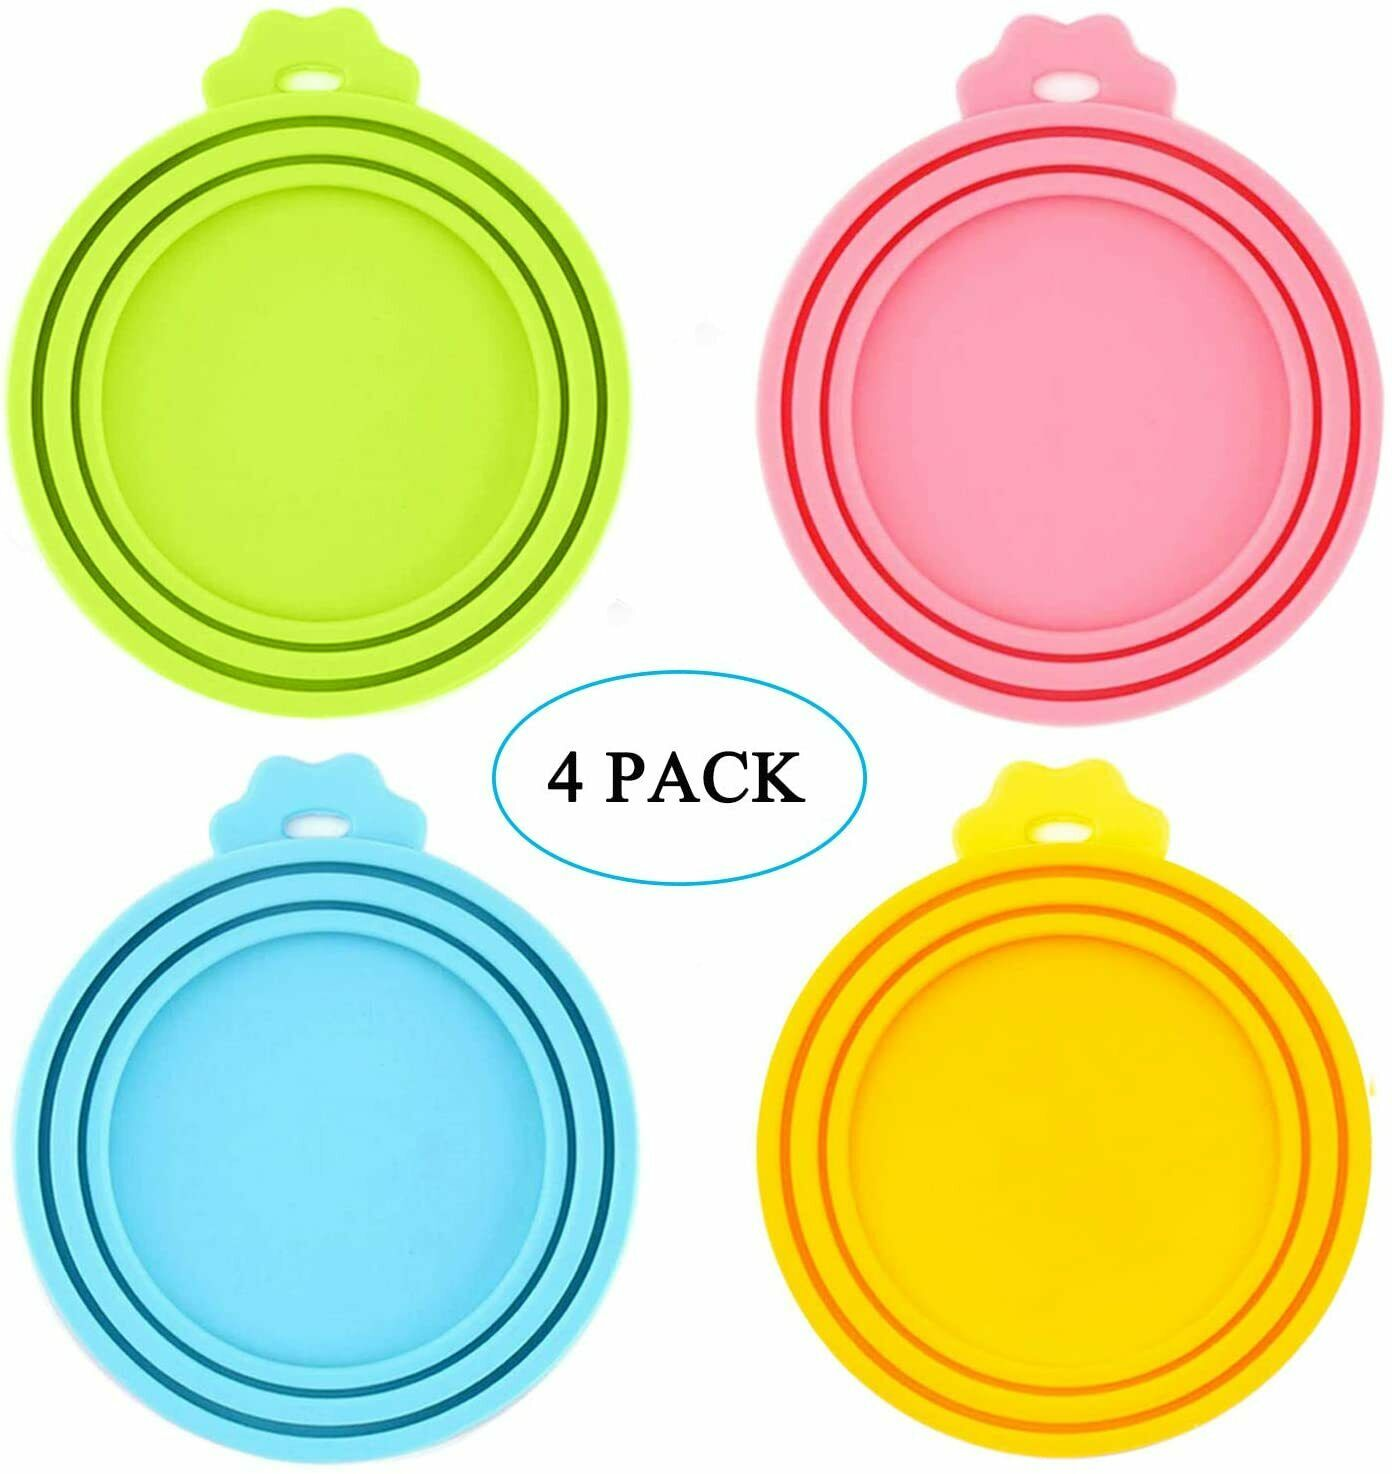 IVIA PET Food Can Lids, Universal BPA Free Silicone Can Lids Covers for Dog and